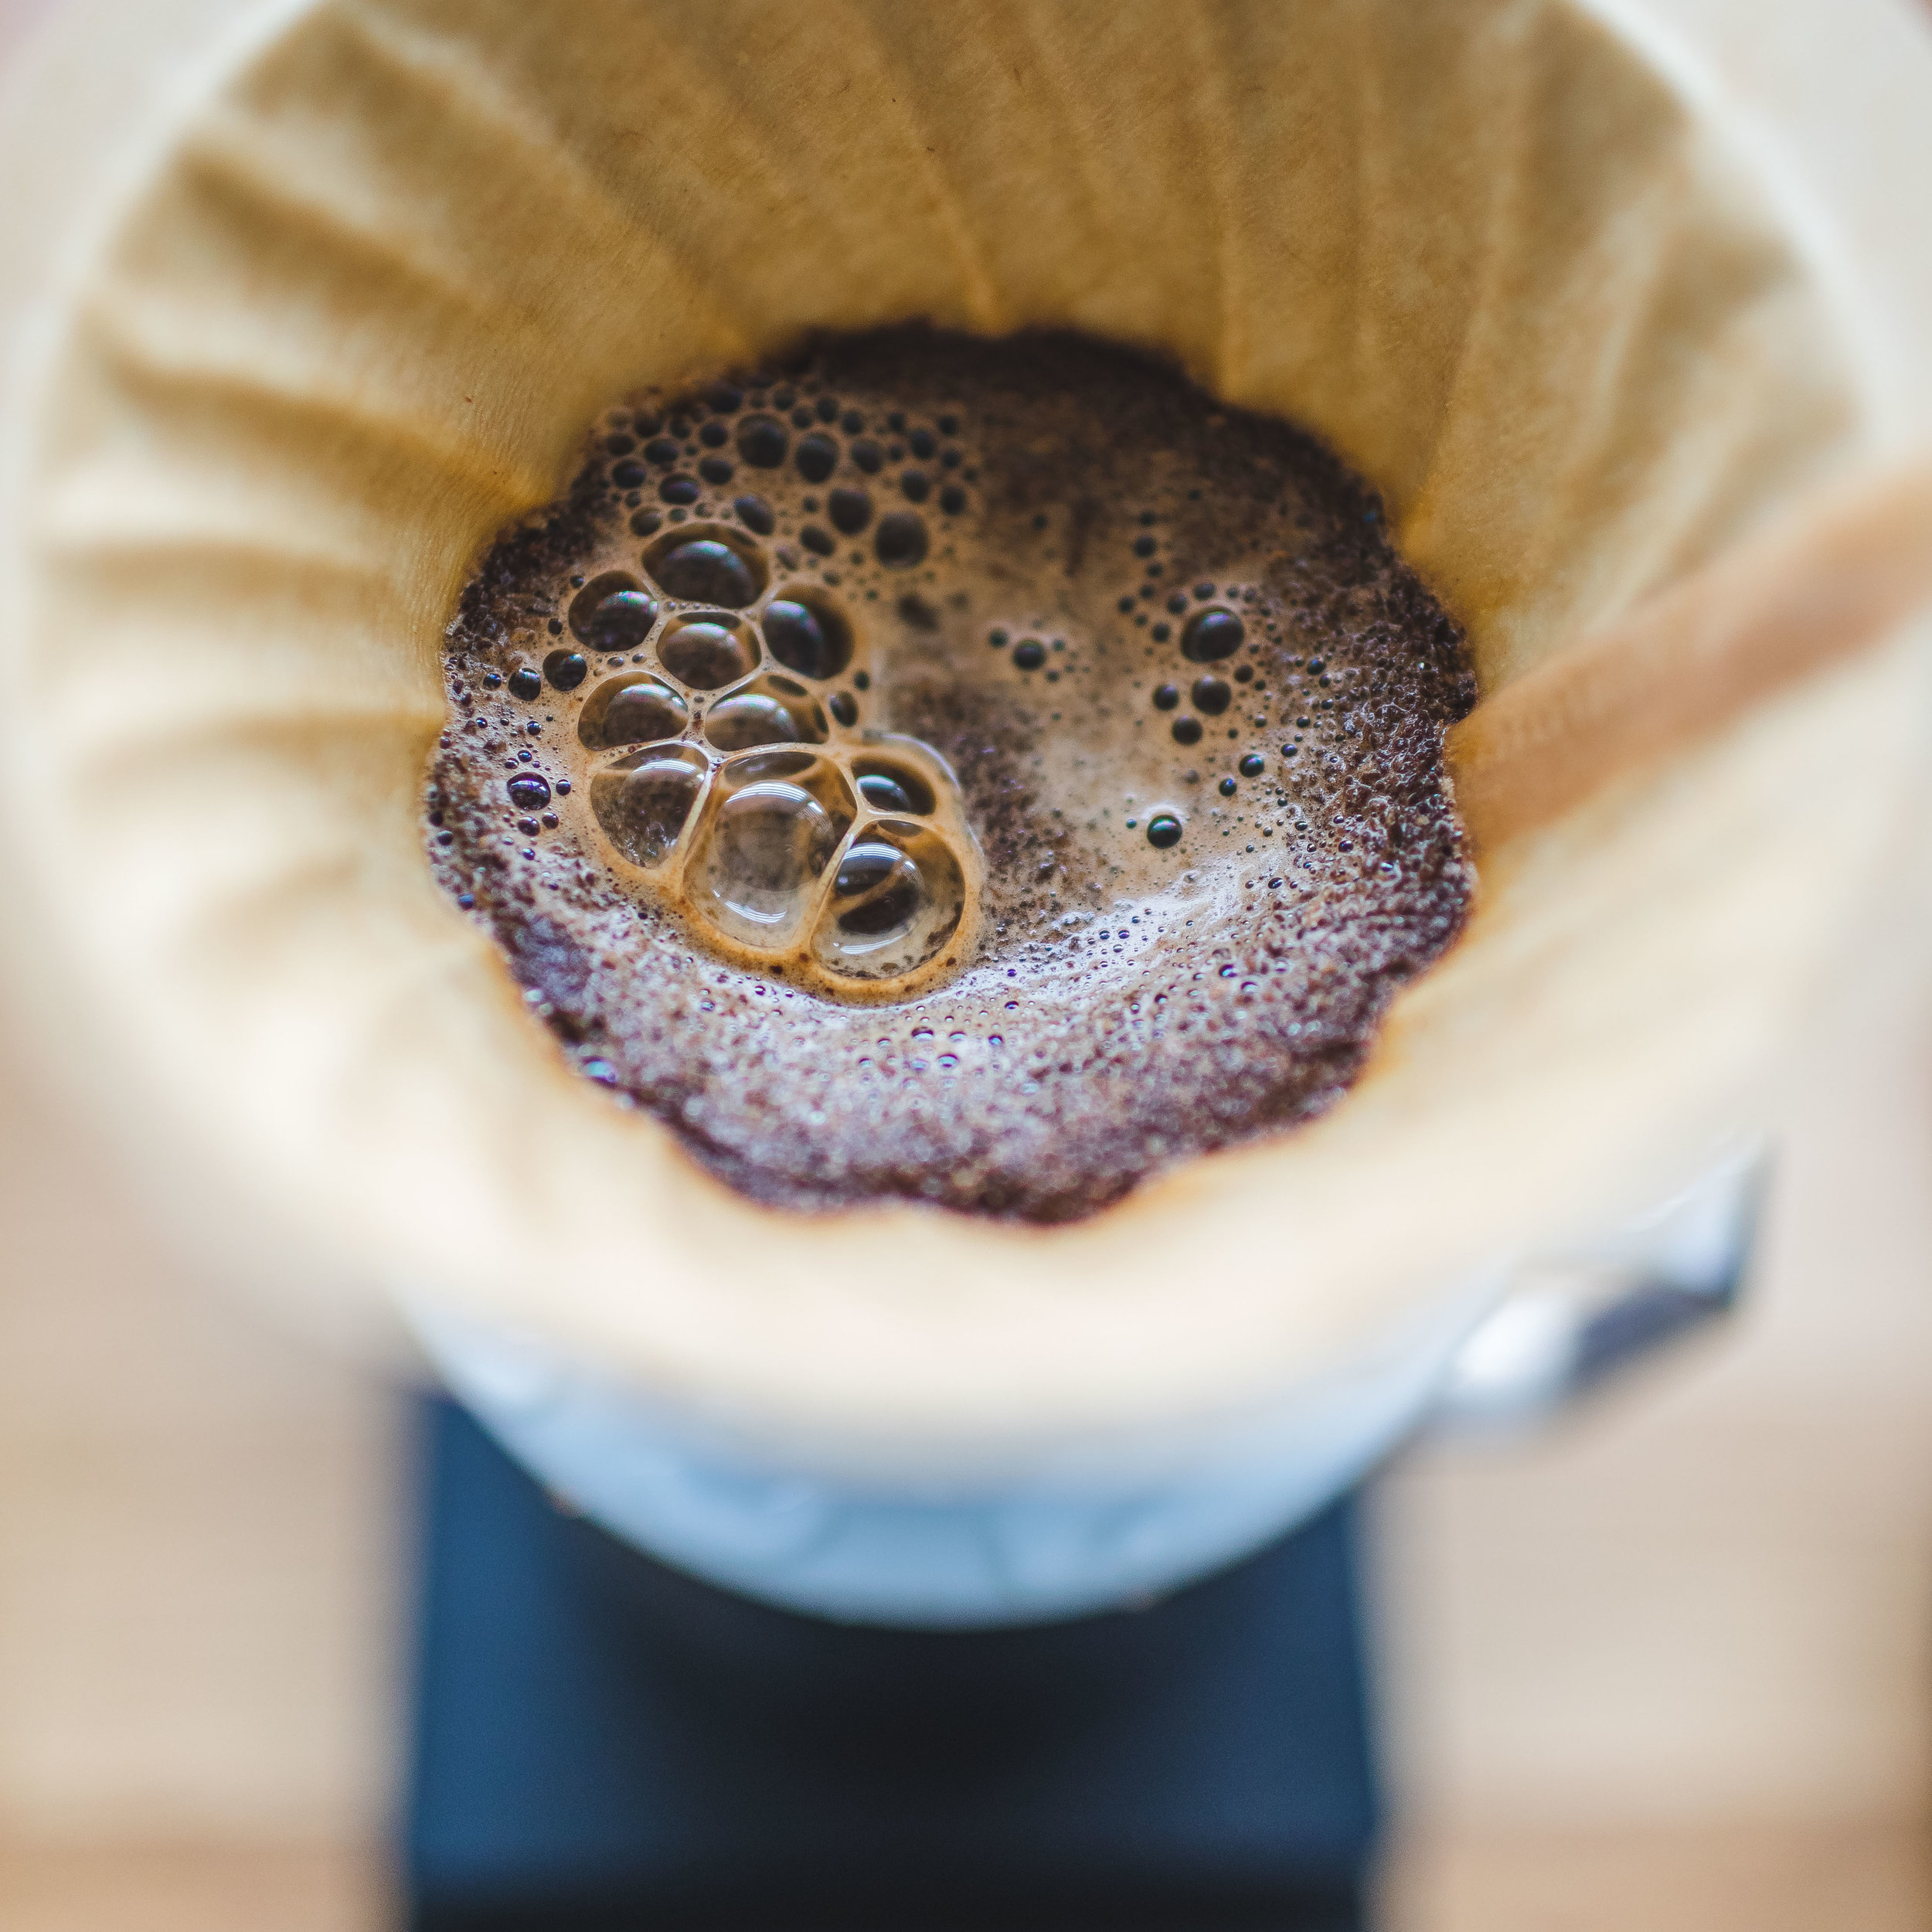 The naturally processed coffee smelled like sweet brown sugar out of the bag and through the bloom.